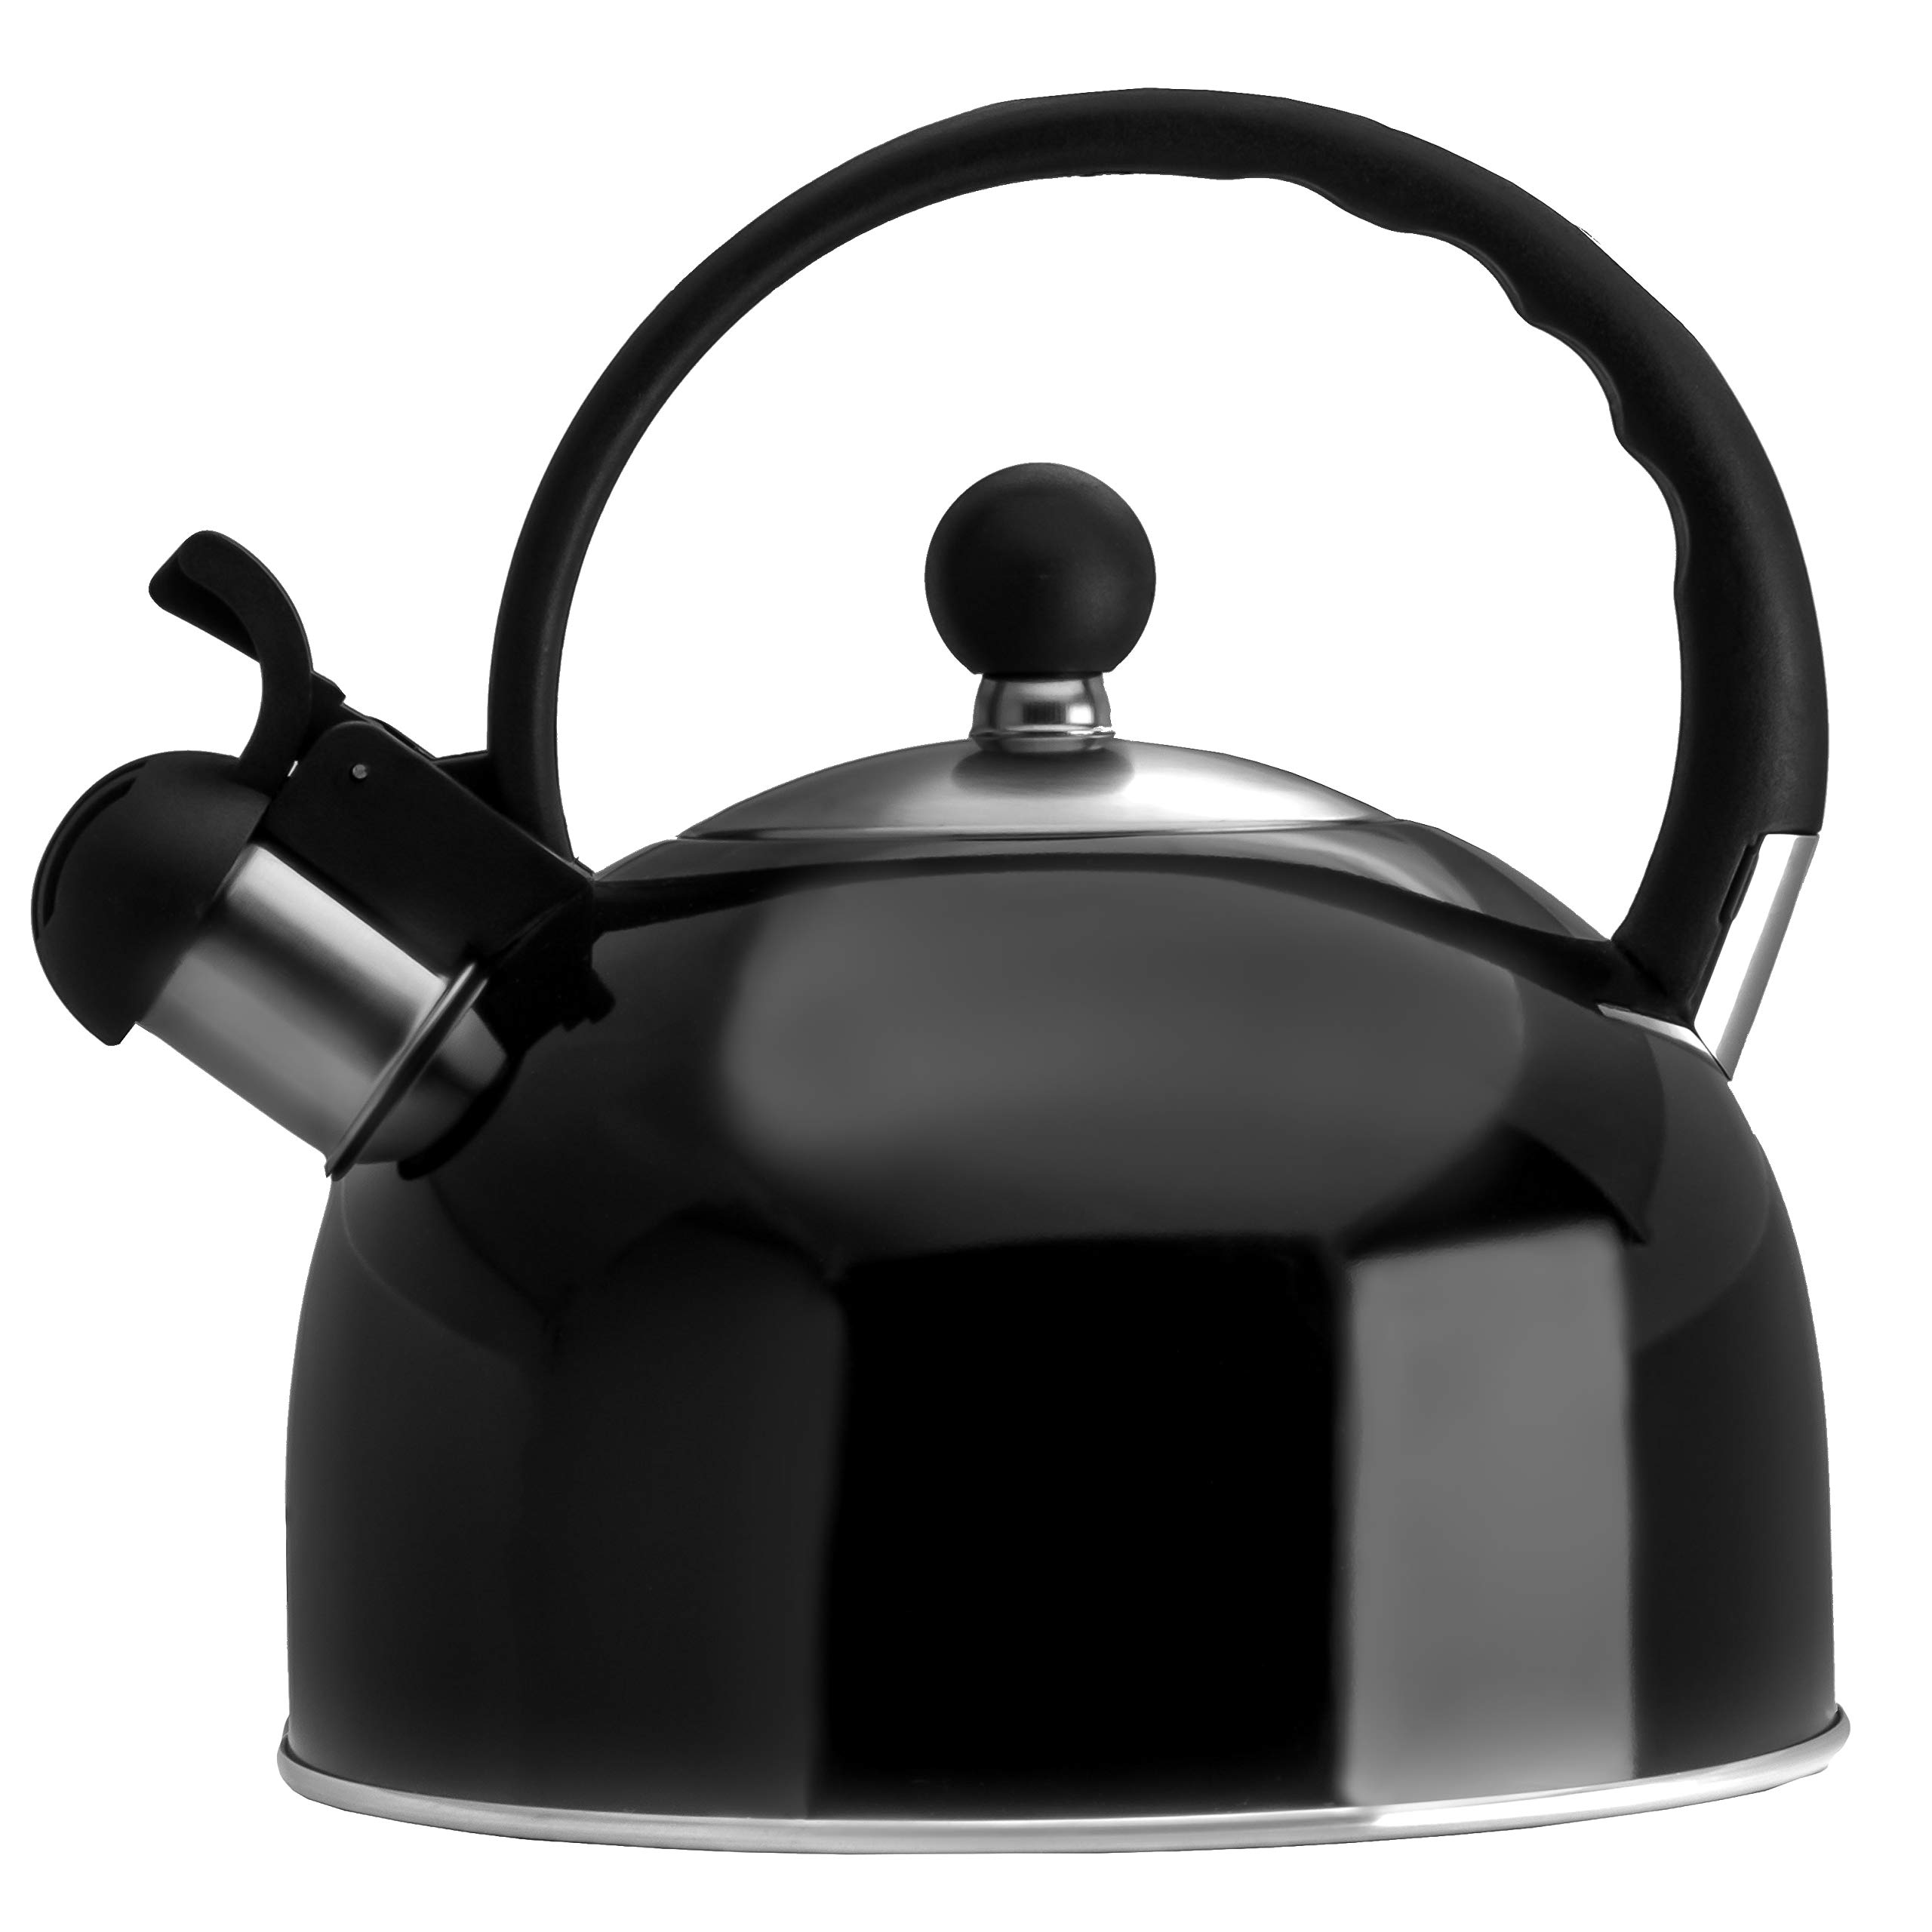 2.5 Liter Whistling Tea Kettle - Modern Stainless Steel Whistling Tea Pot for Stovetop with Cool Grip Ergonomic Handle - Black by Venoly